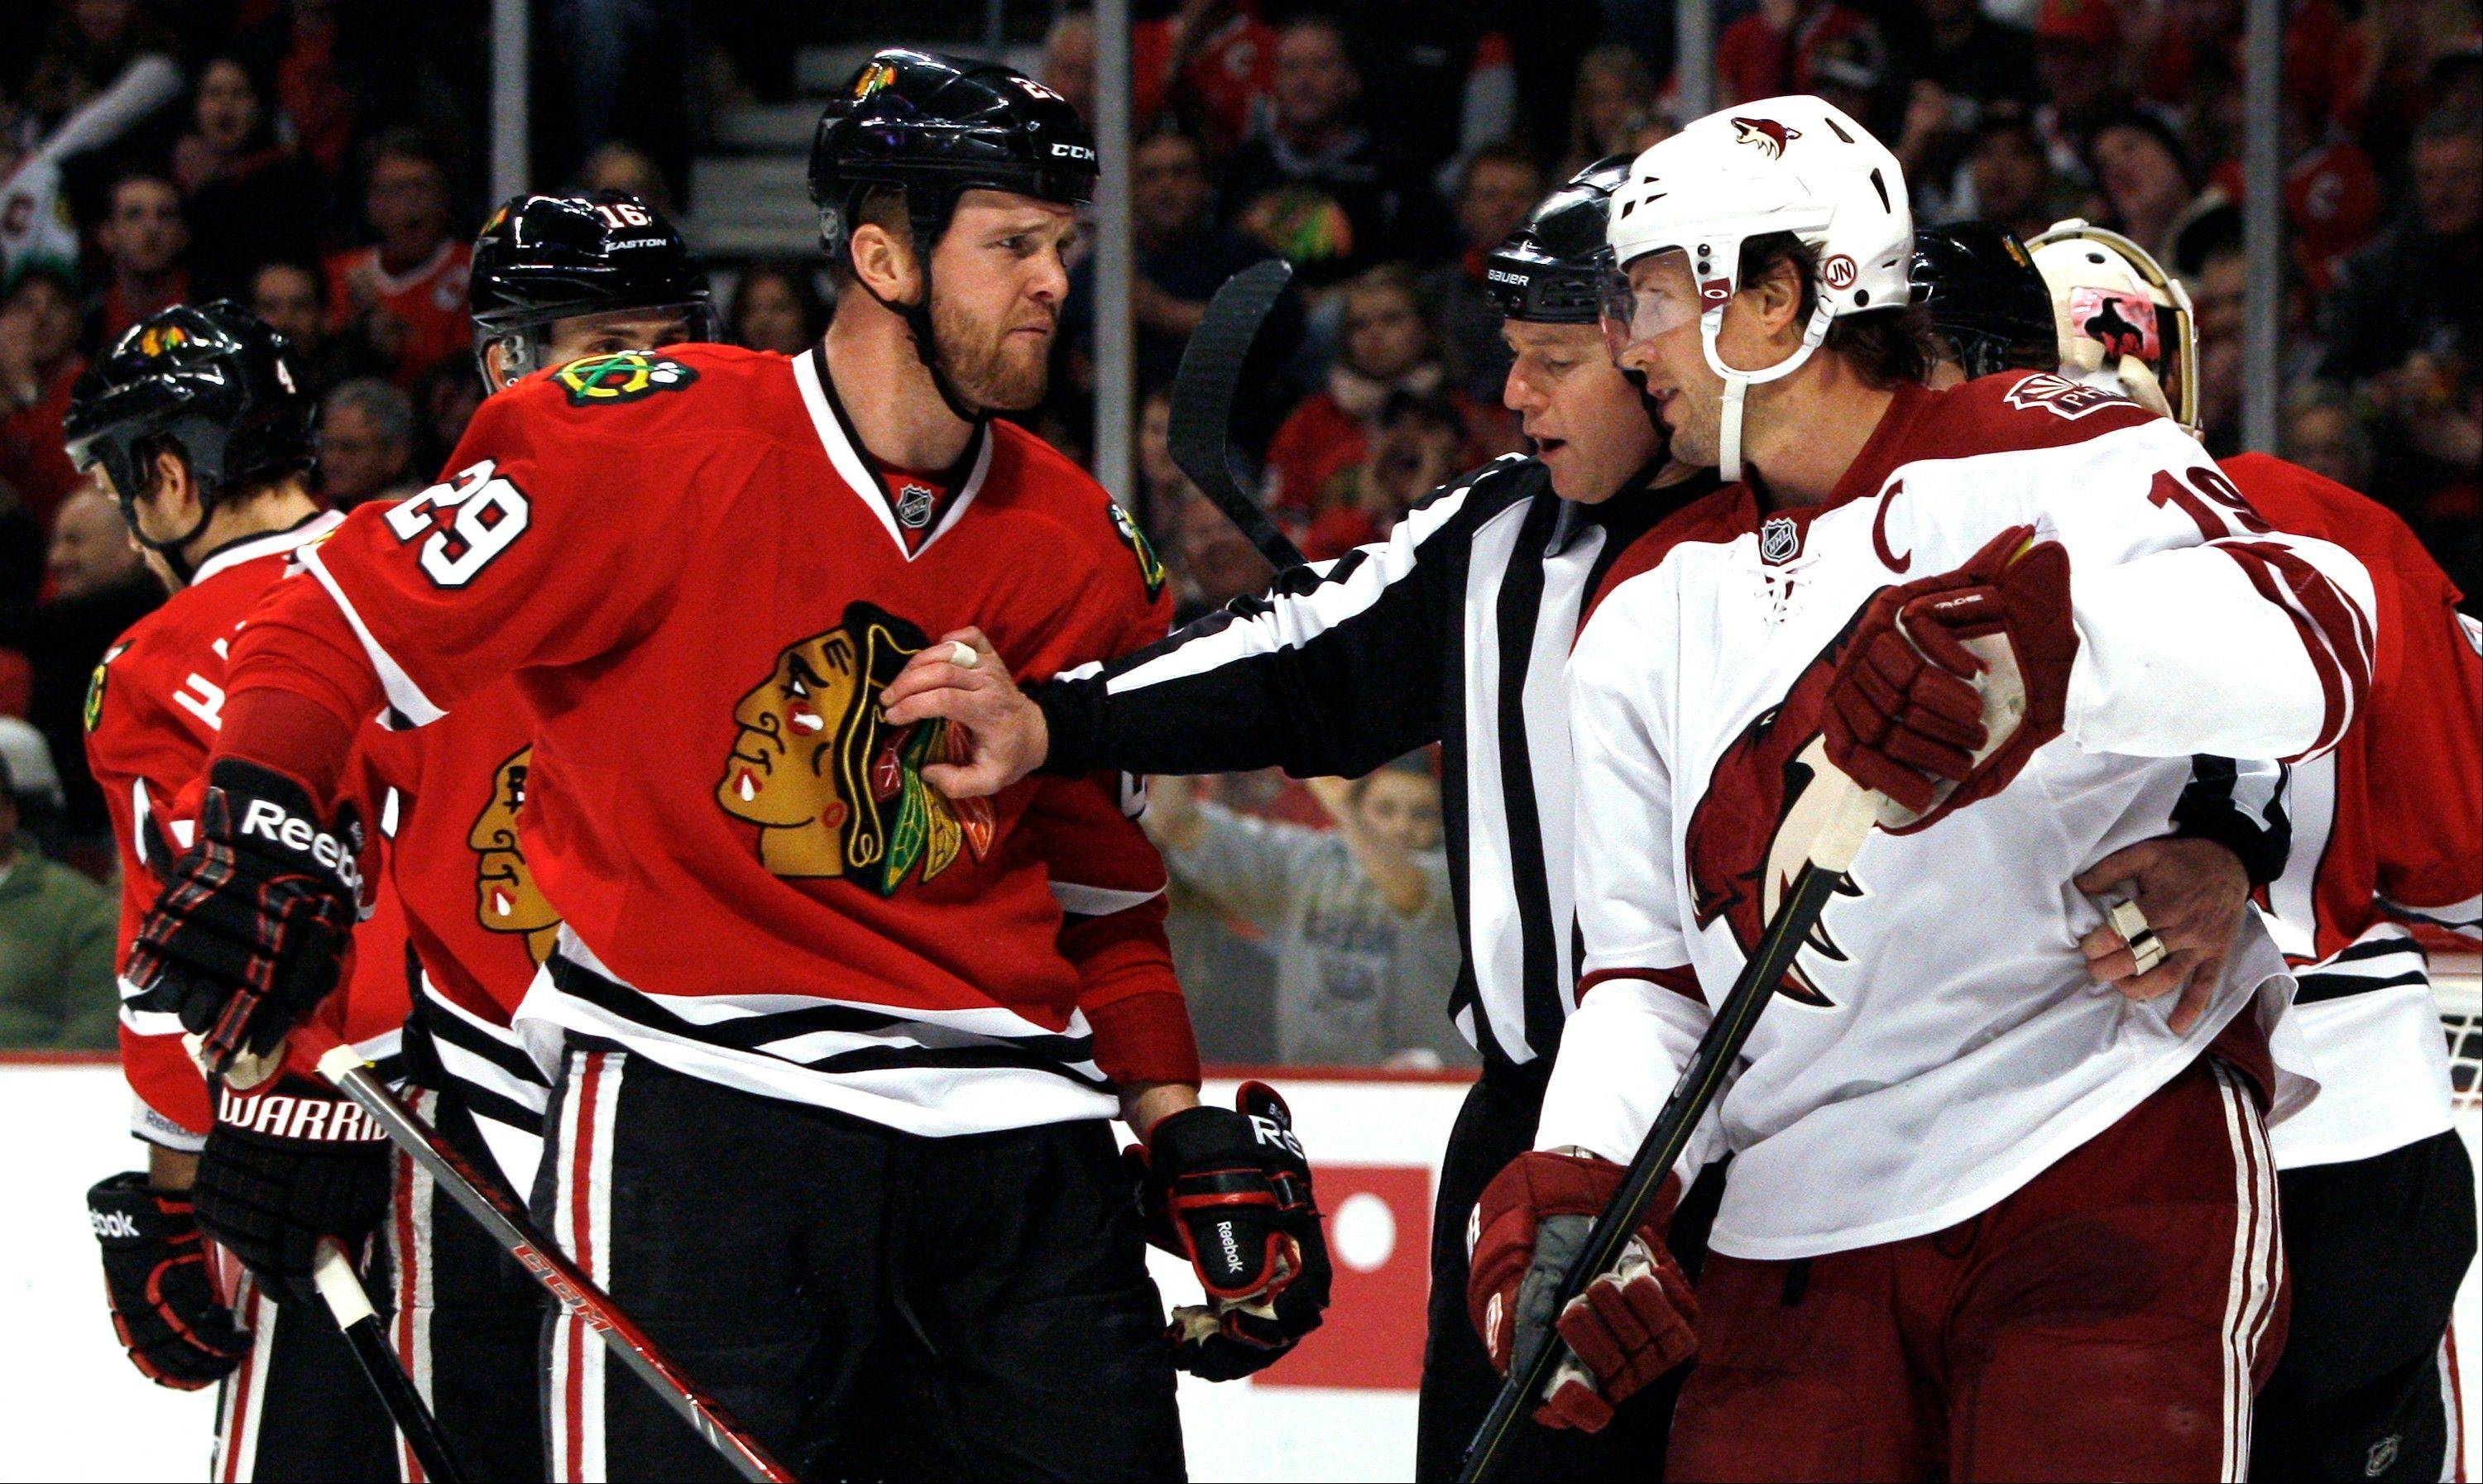 An official separates the Blackhawks' Bryan Bickell, left, and Phoenix Coyotes' Shane Doan during the first period of Saturday's game in Chicago.